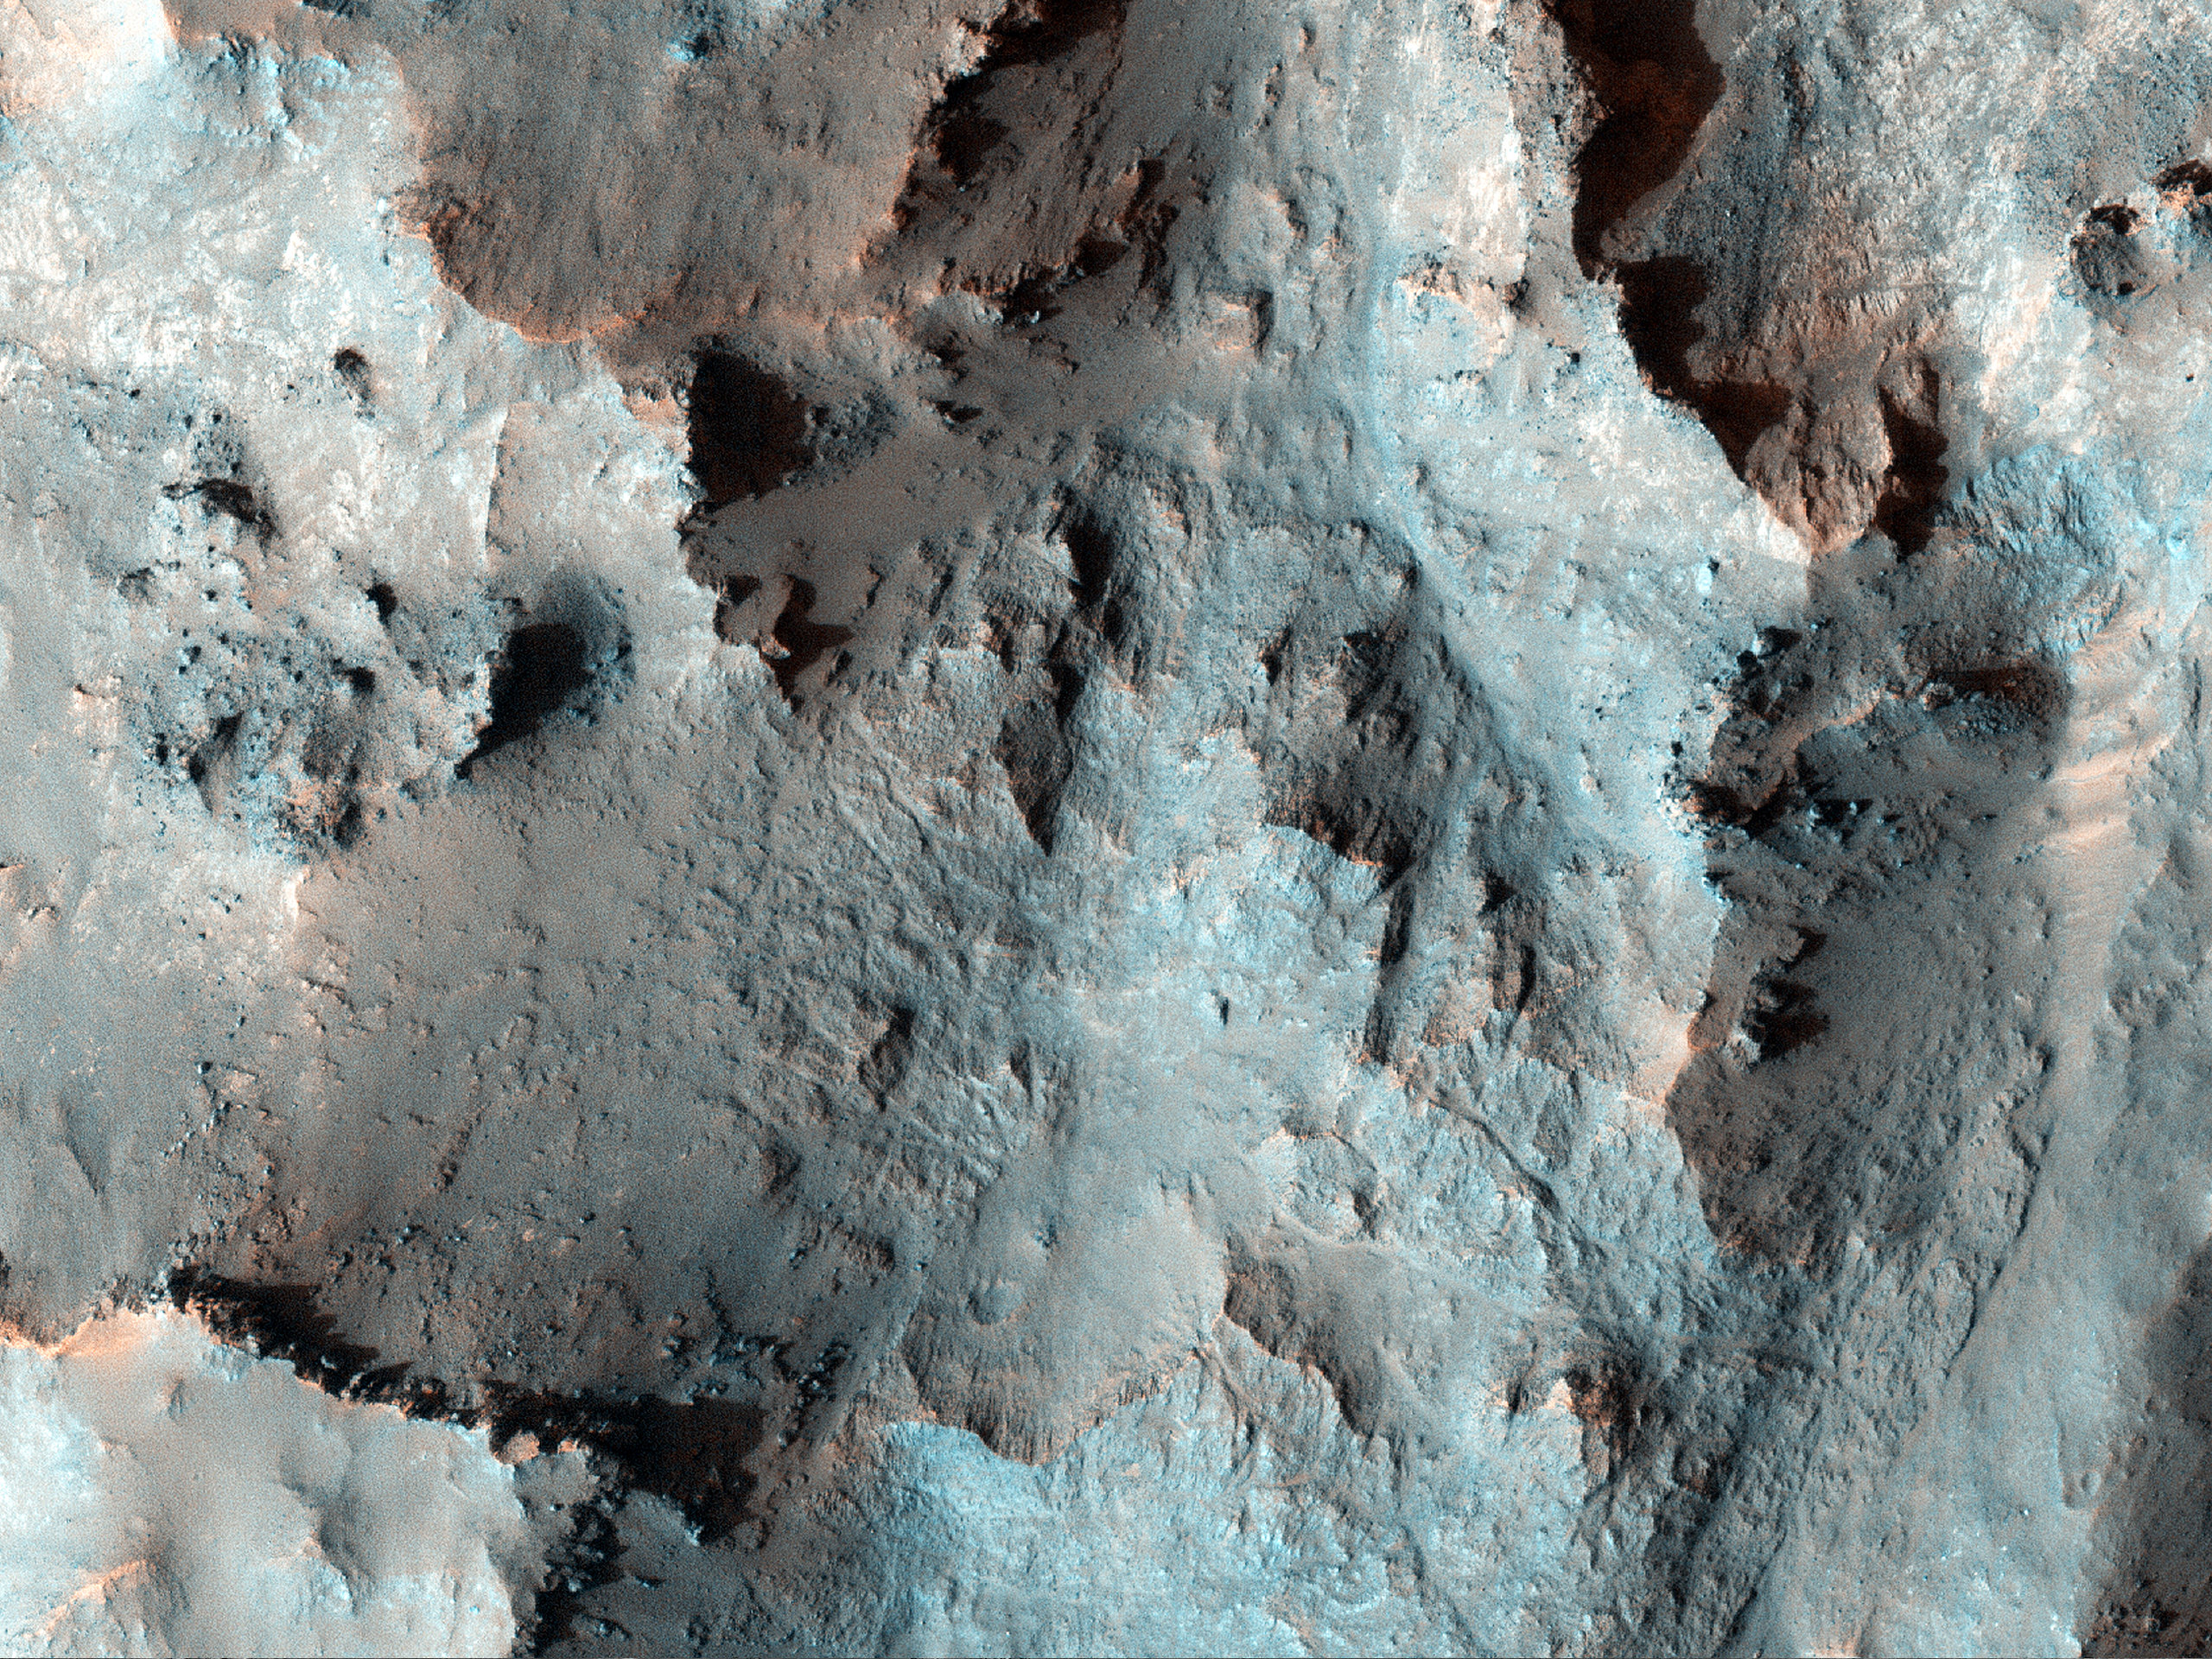 Central Peak of Elorza Crater